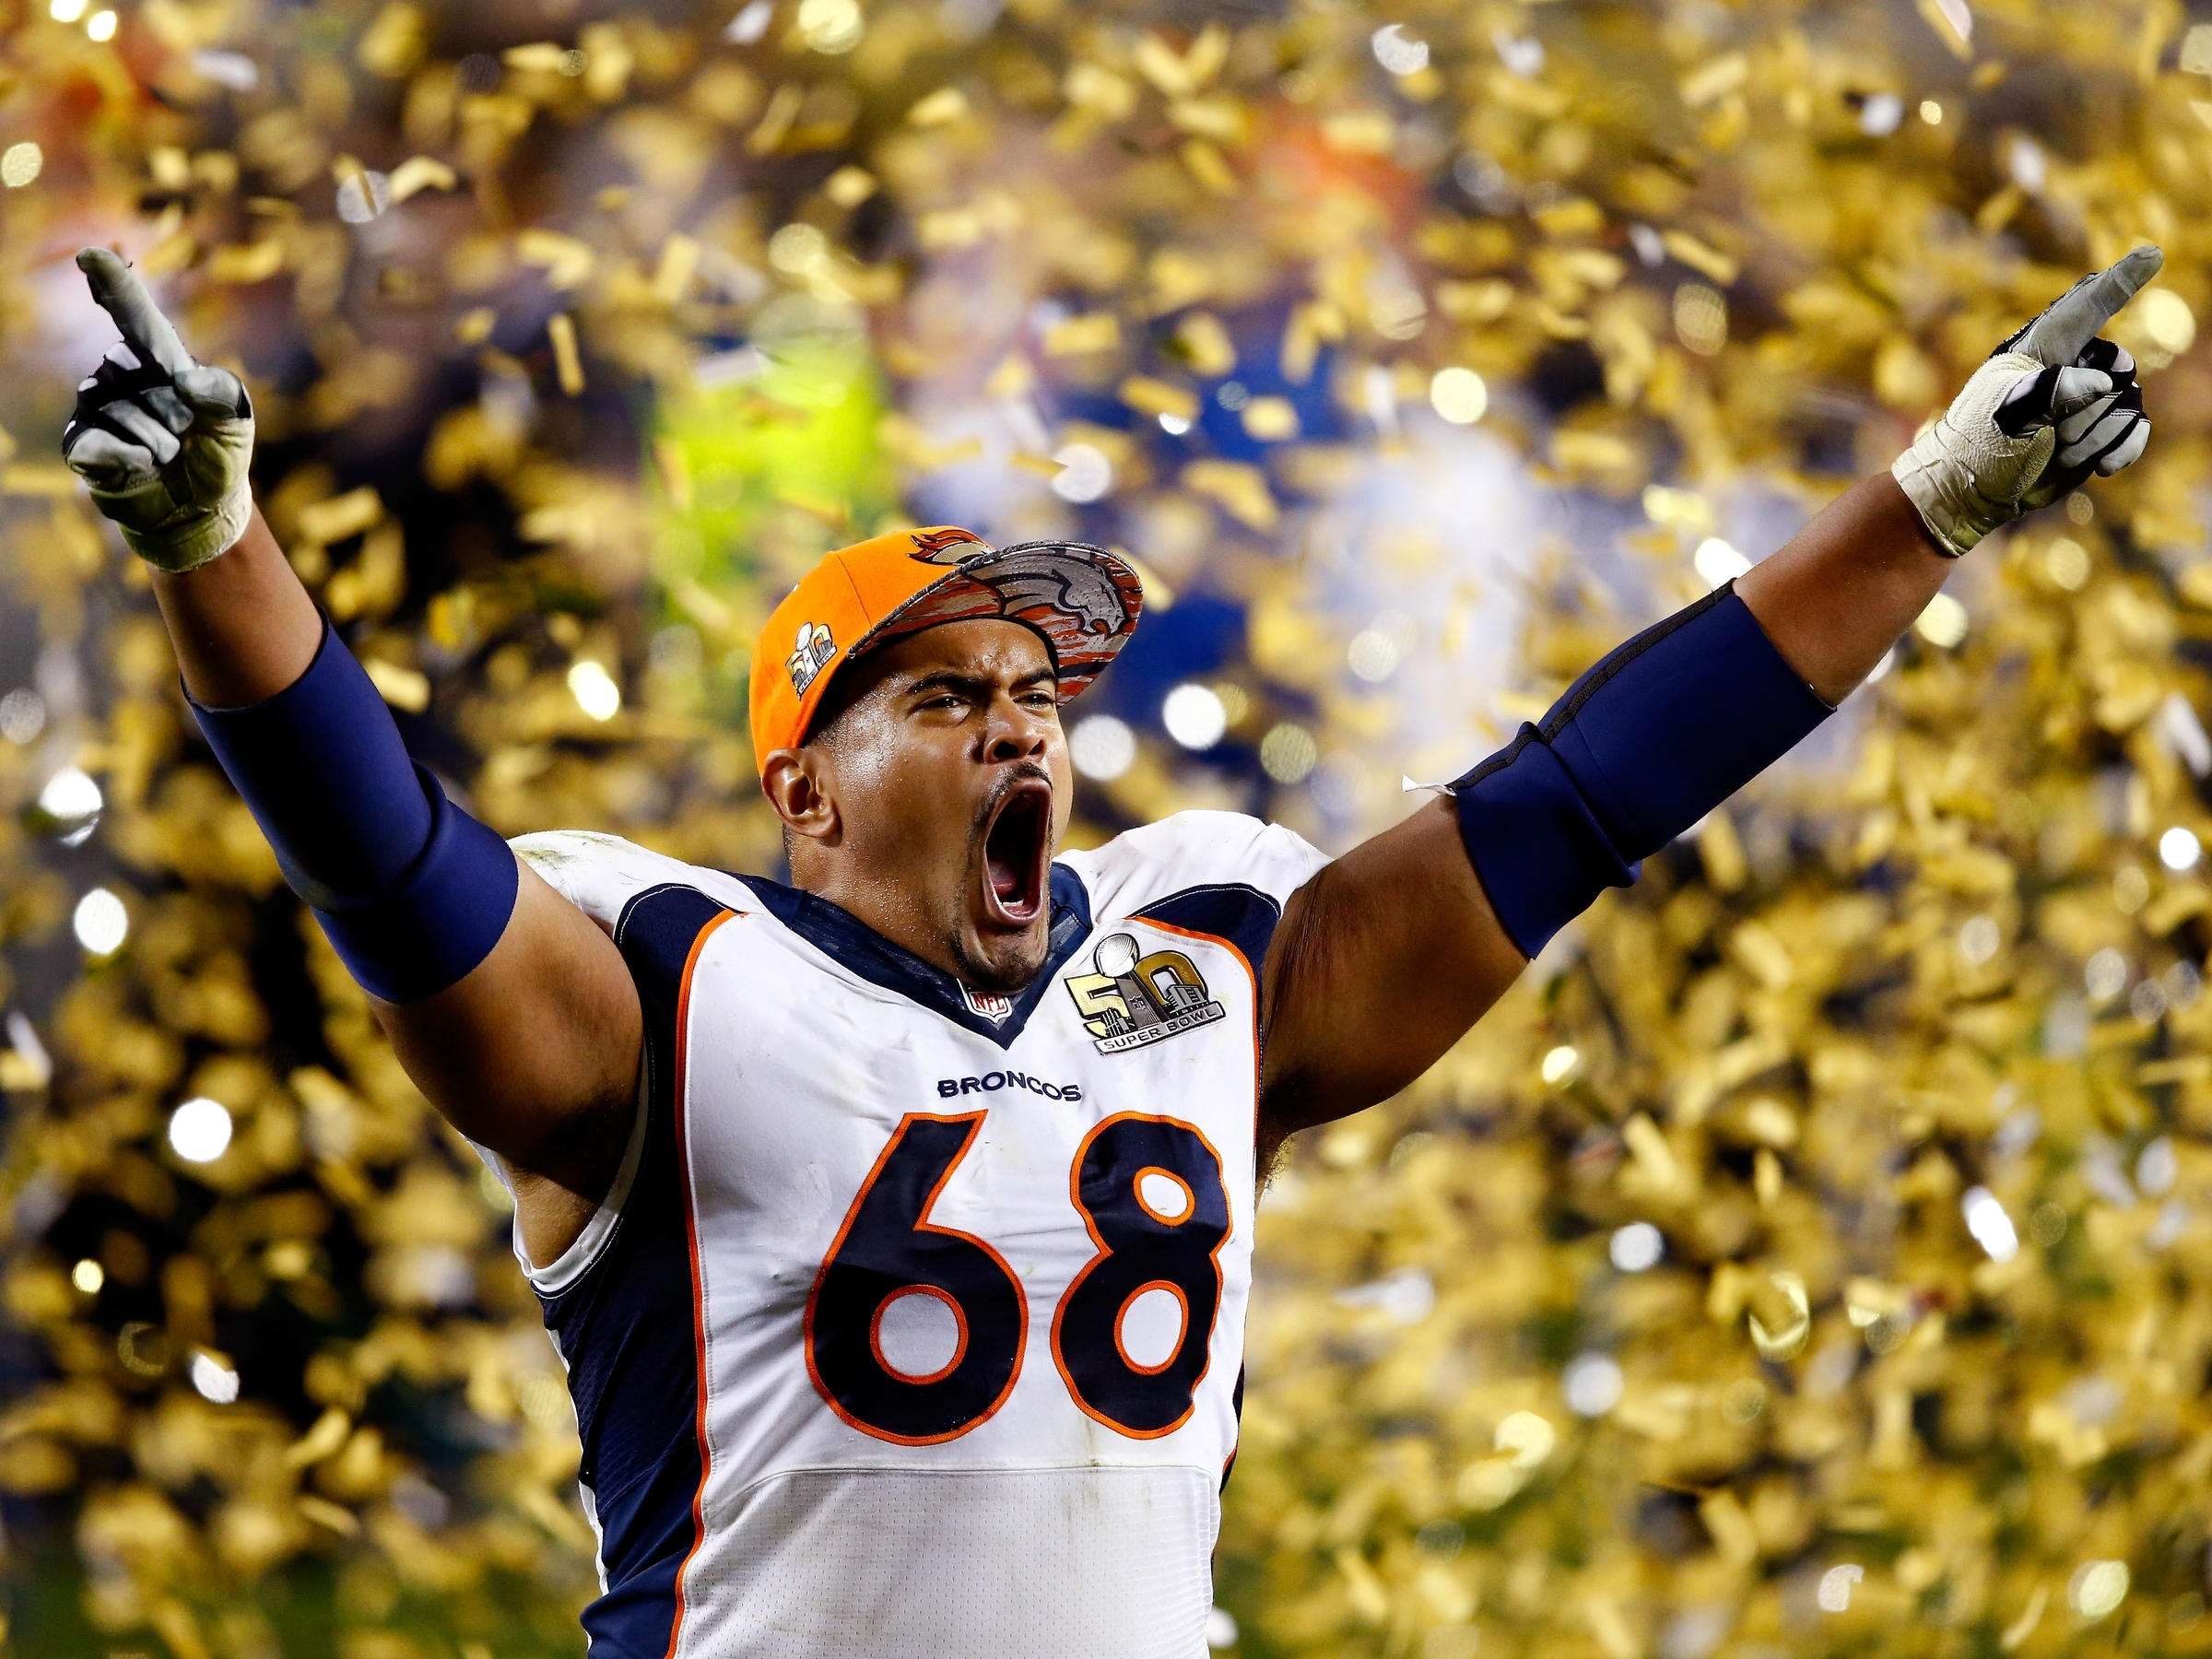 Denver Broncos Triumph In Super Bowl 50: A Live Blog In Haiku with Broncos Super Bowl 50